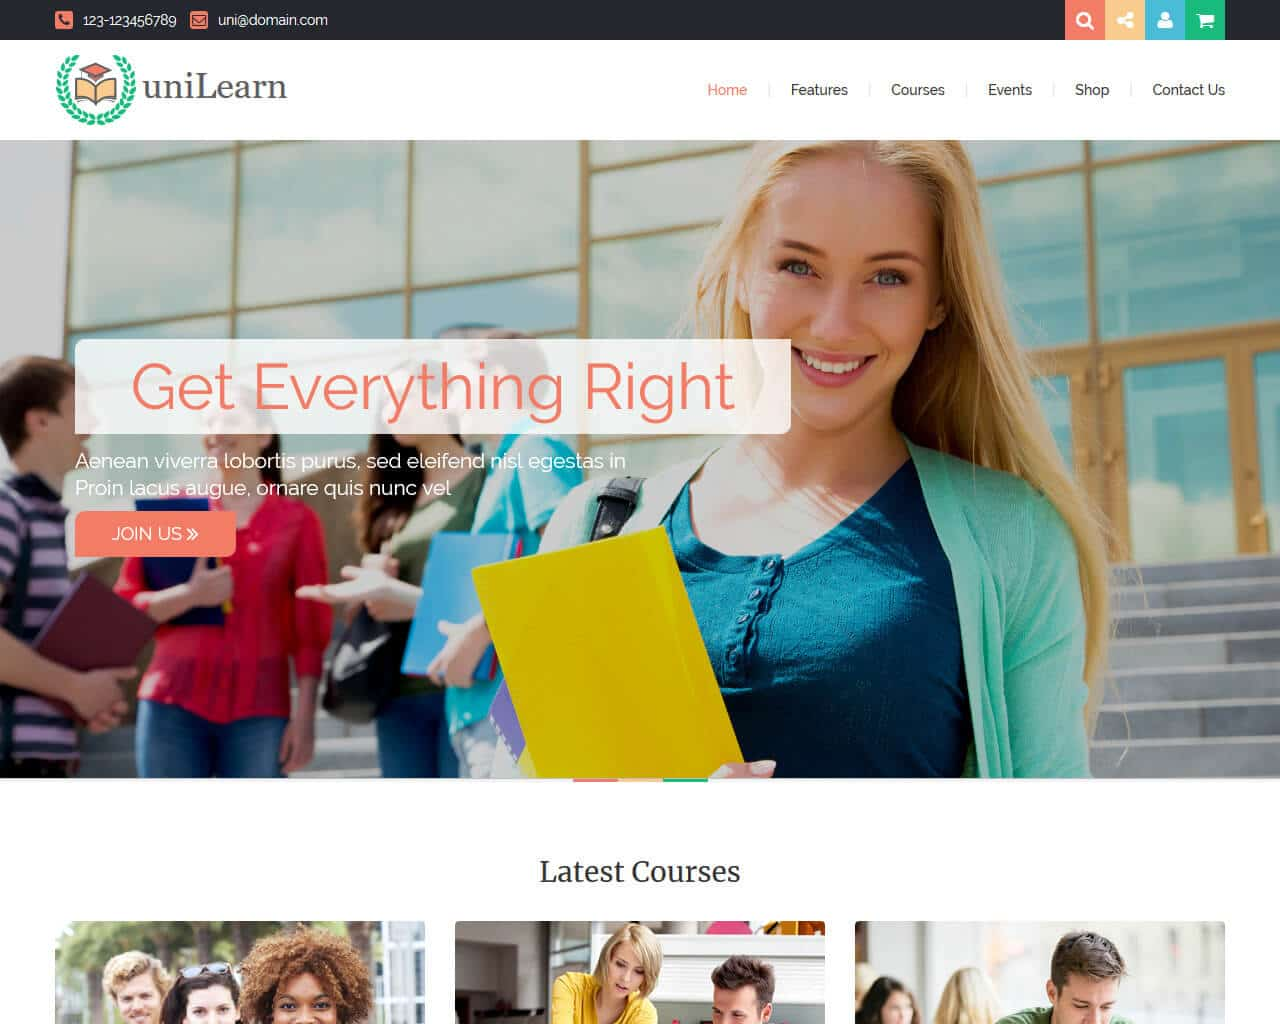 UniLearn Website Template